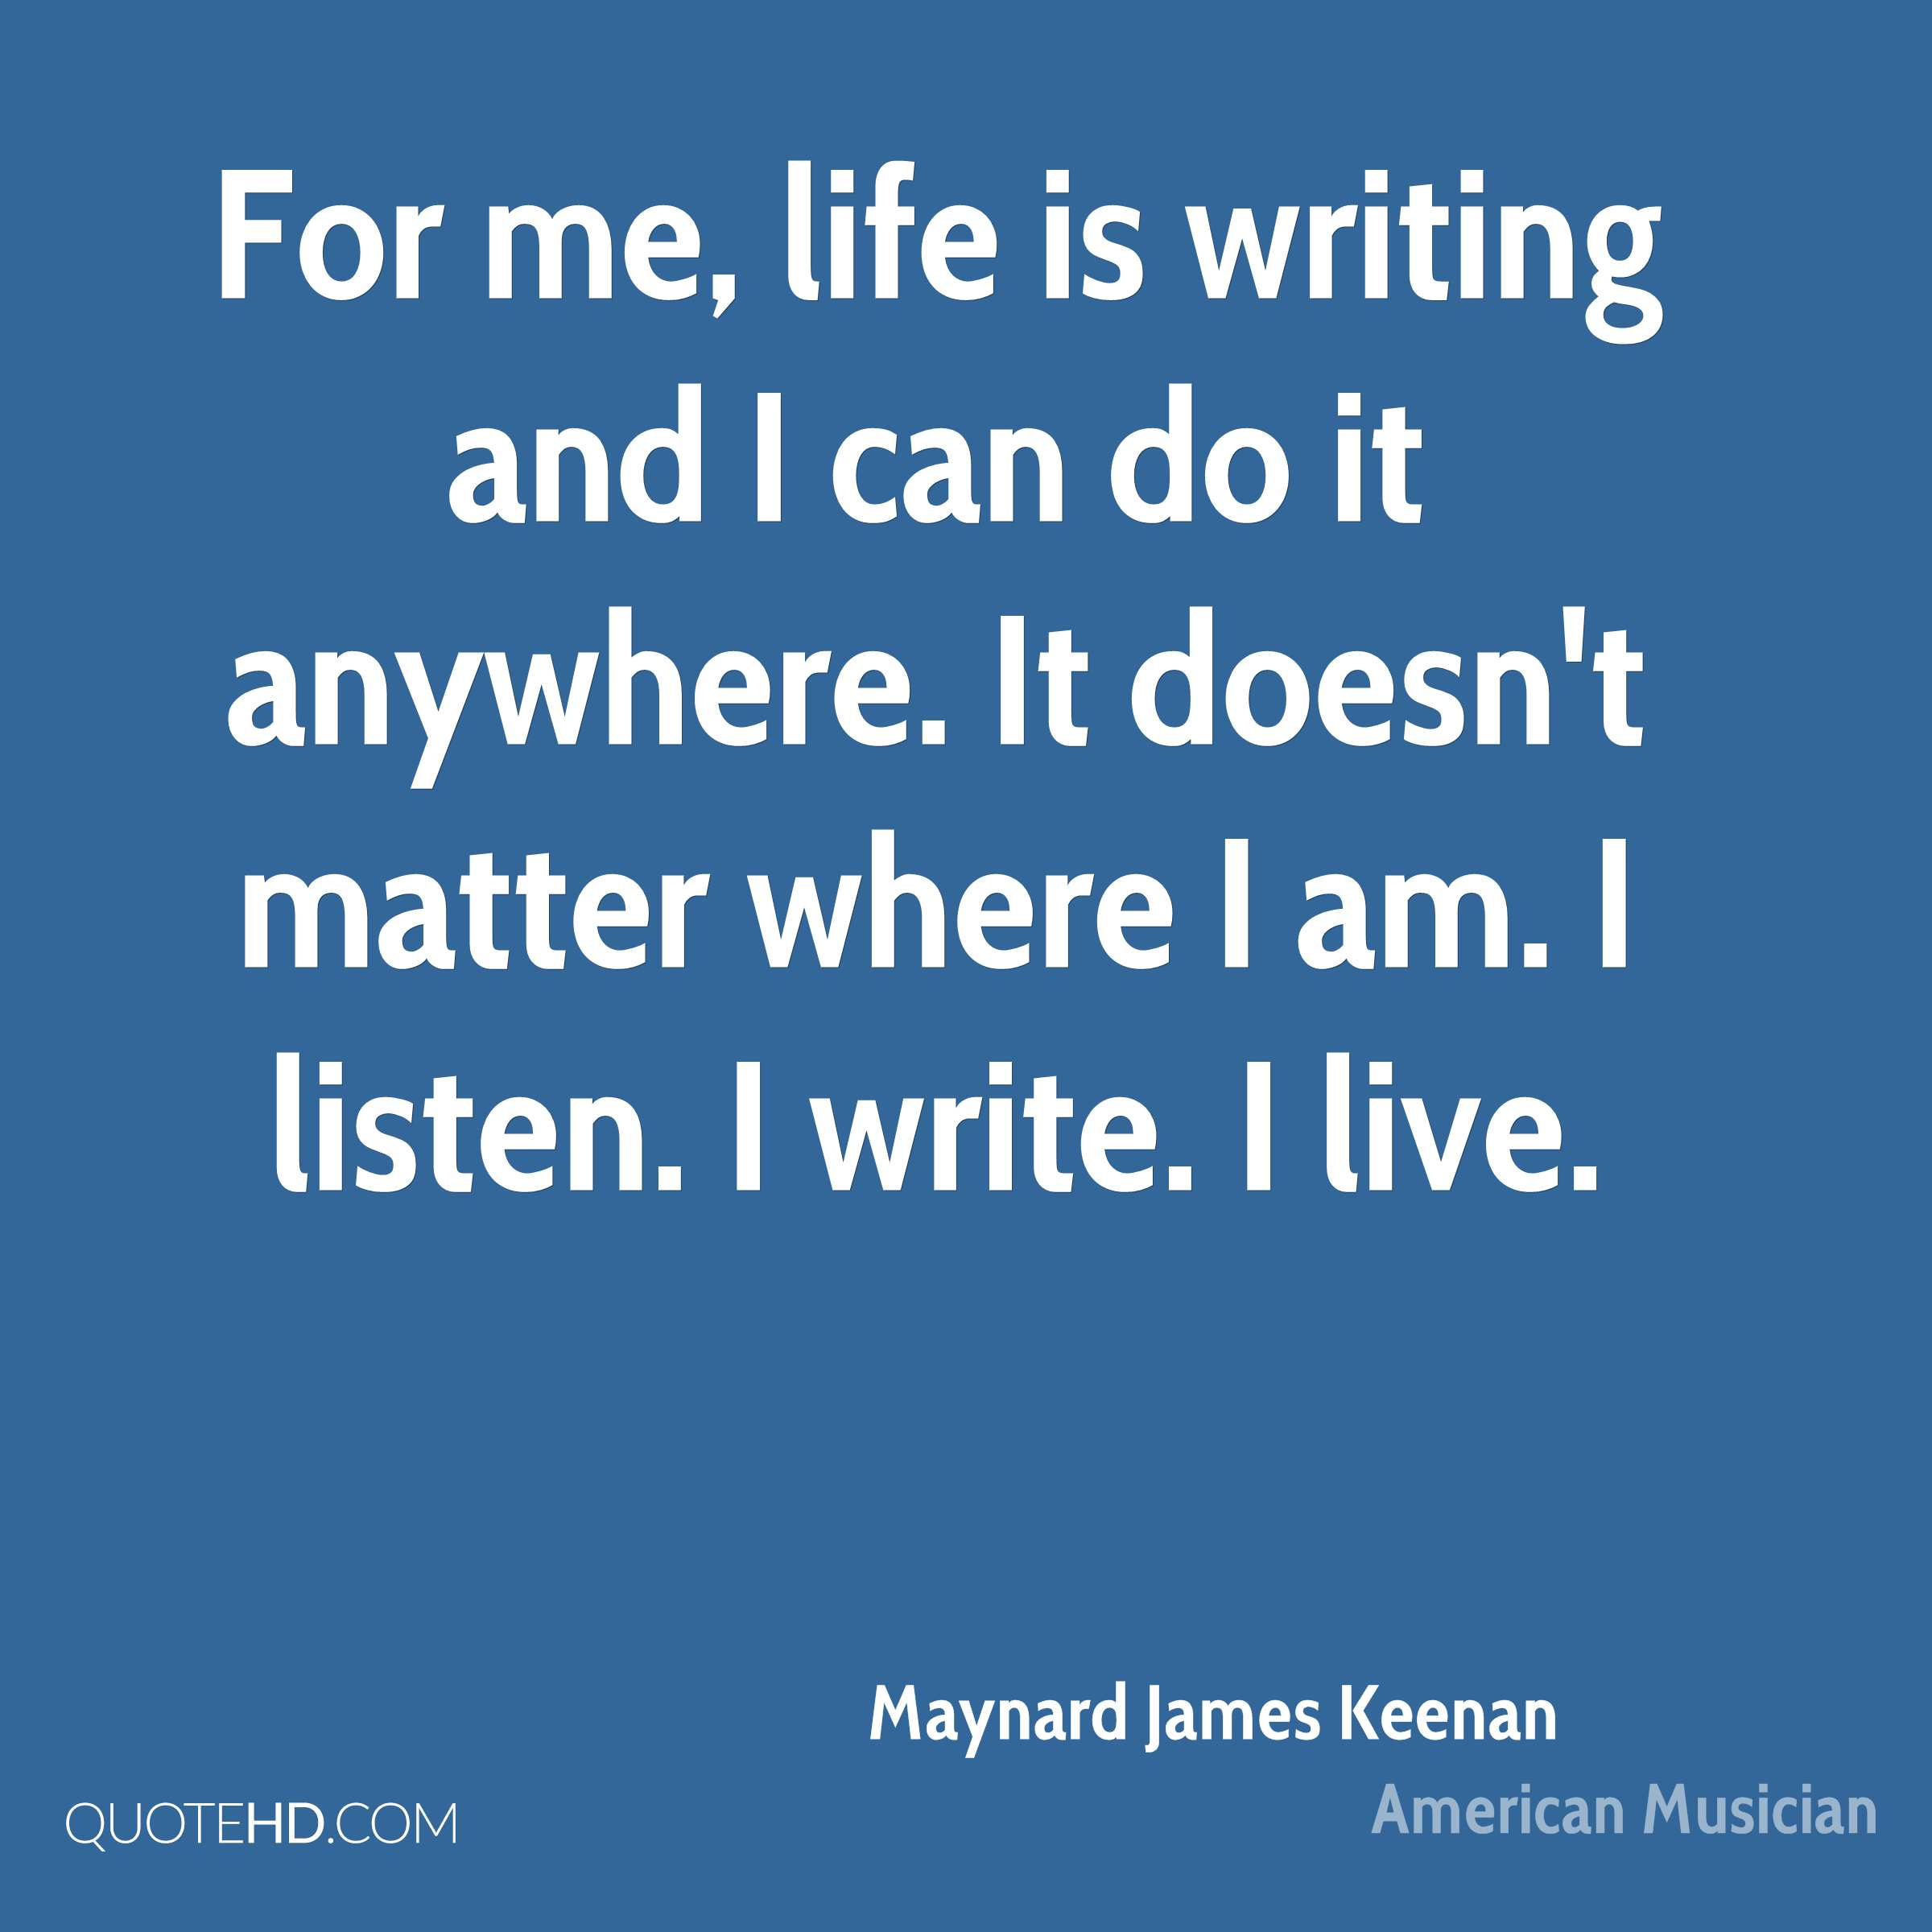 For me, life is writing and I can do it anywhere. It doesn't matter where I am. I listen. I write. I live.